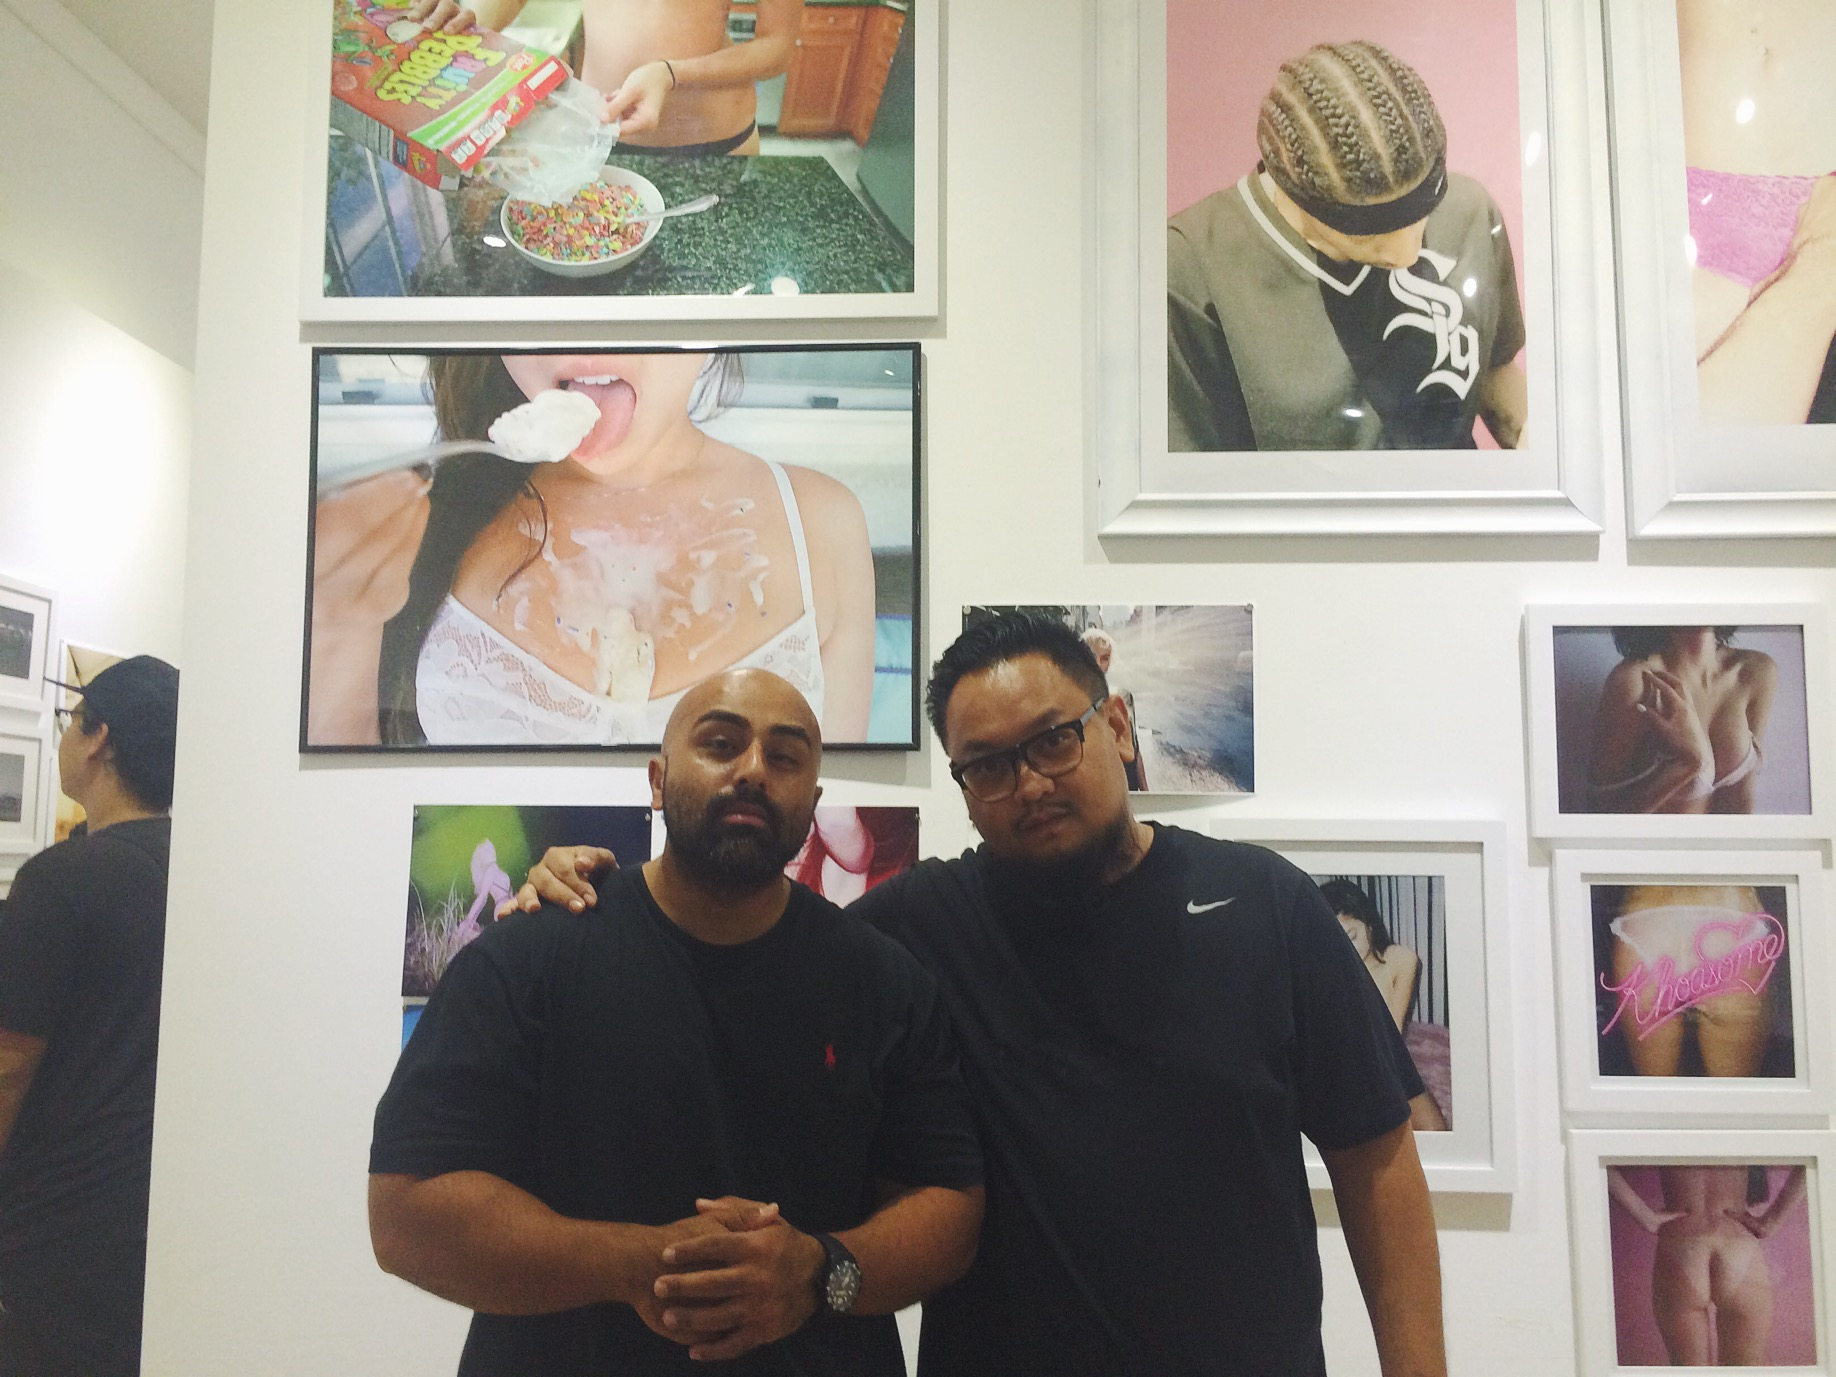 I accidentally deleted a photo of this wall, where I found two more of my pieces from the FOODPORN collection. So this photo of Big Mike and I will do. Shout out to Big Mike for making out to the show just for a few minutes, much love.